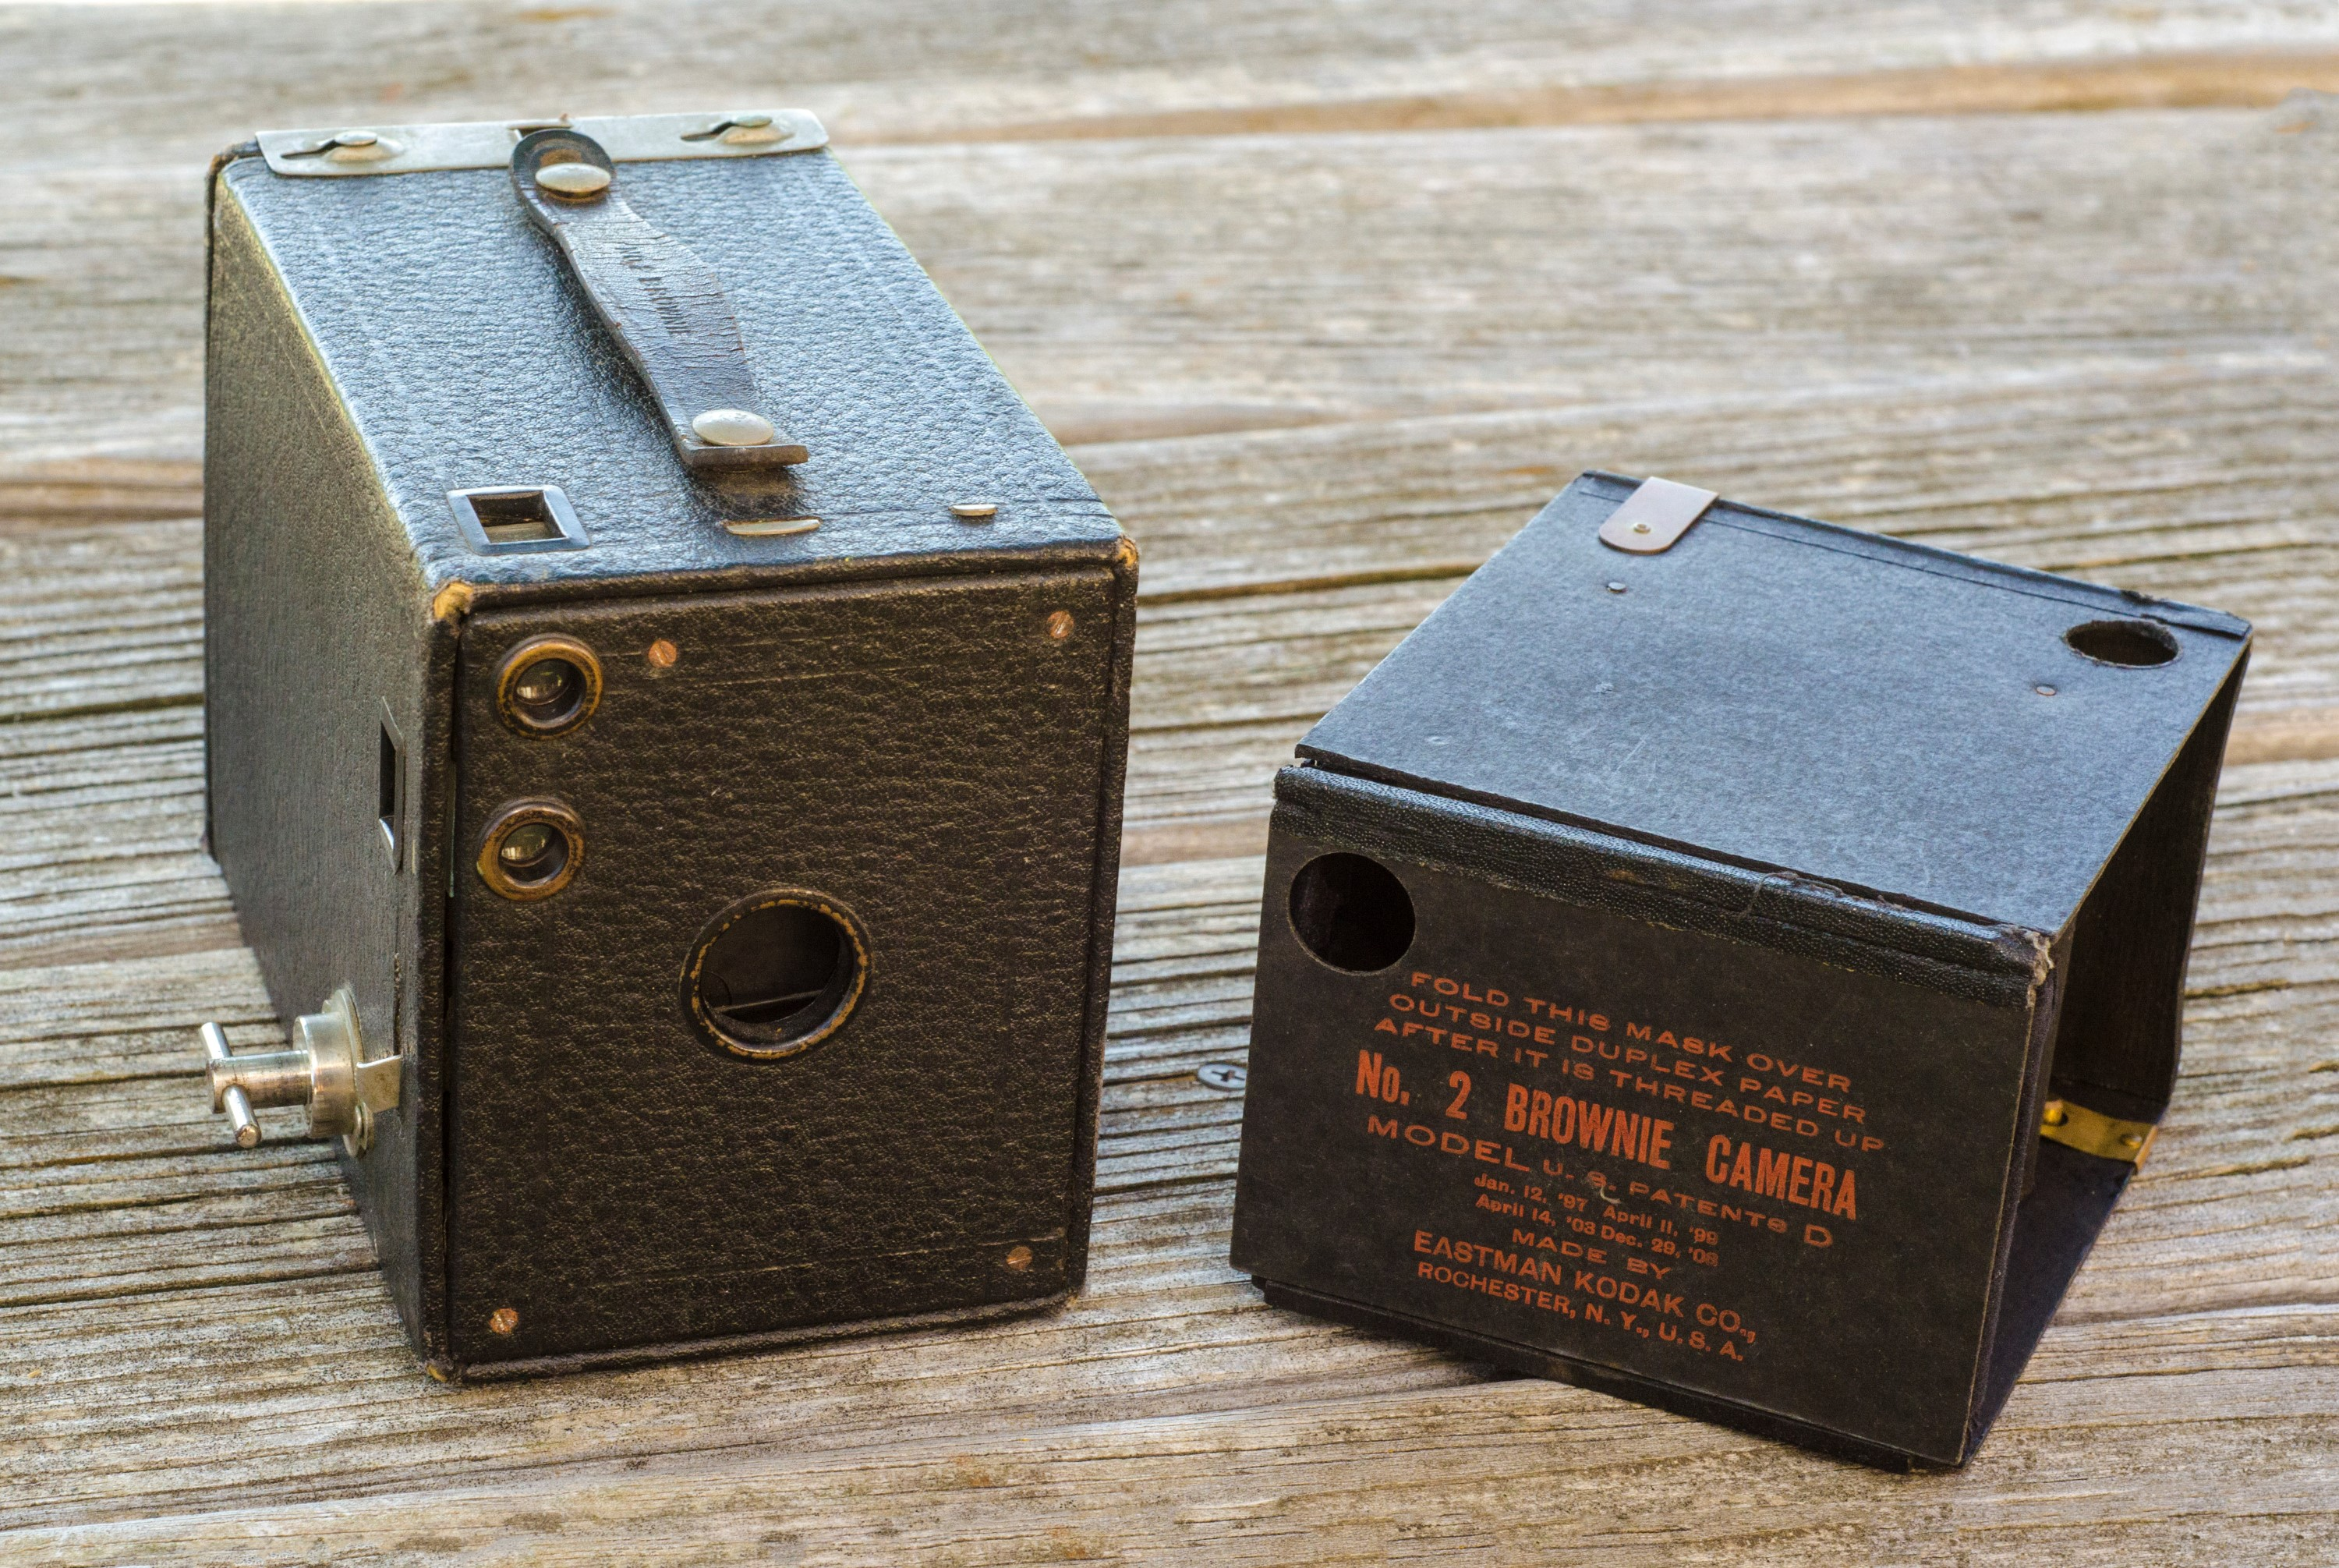 Kodak No. 2 Brownie Model D (1914)